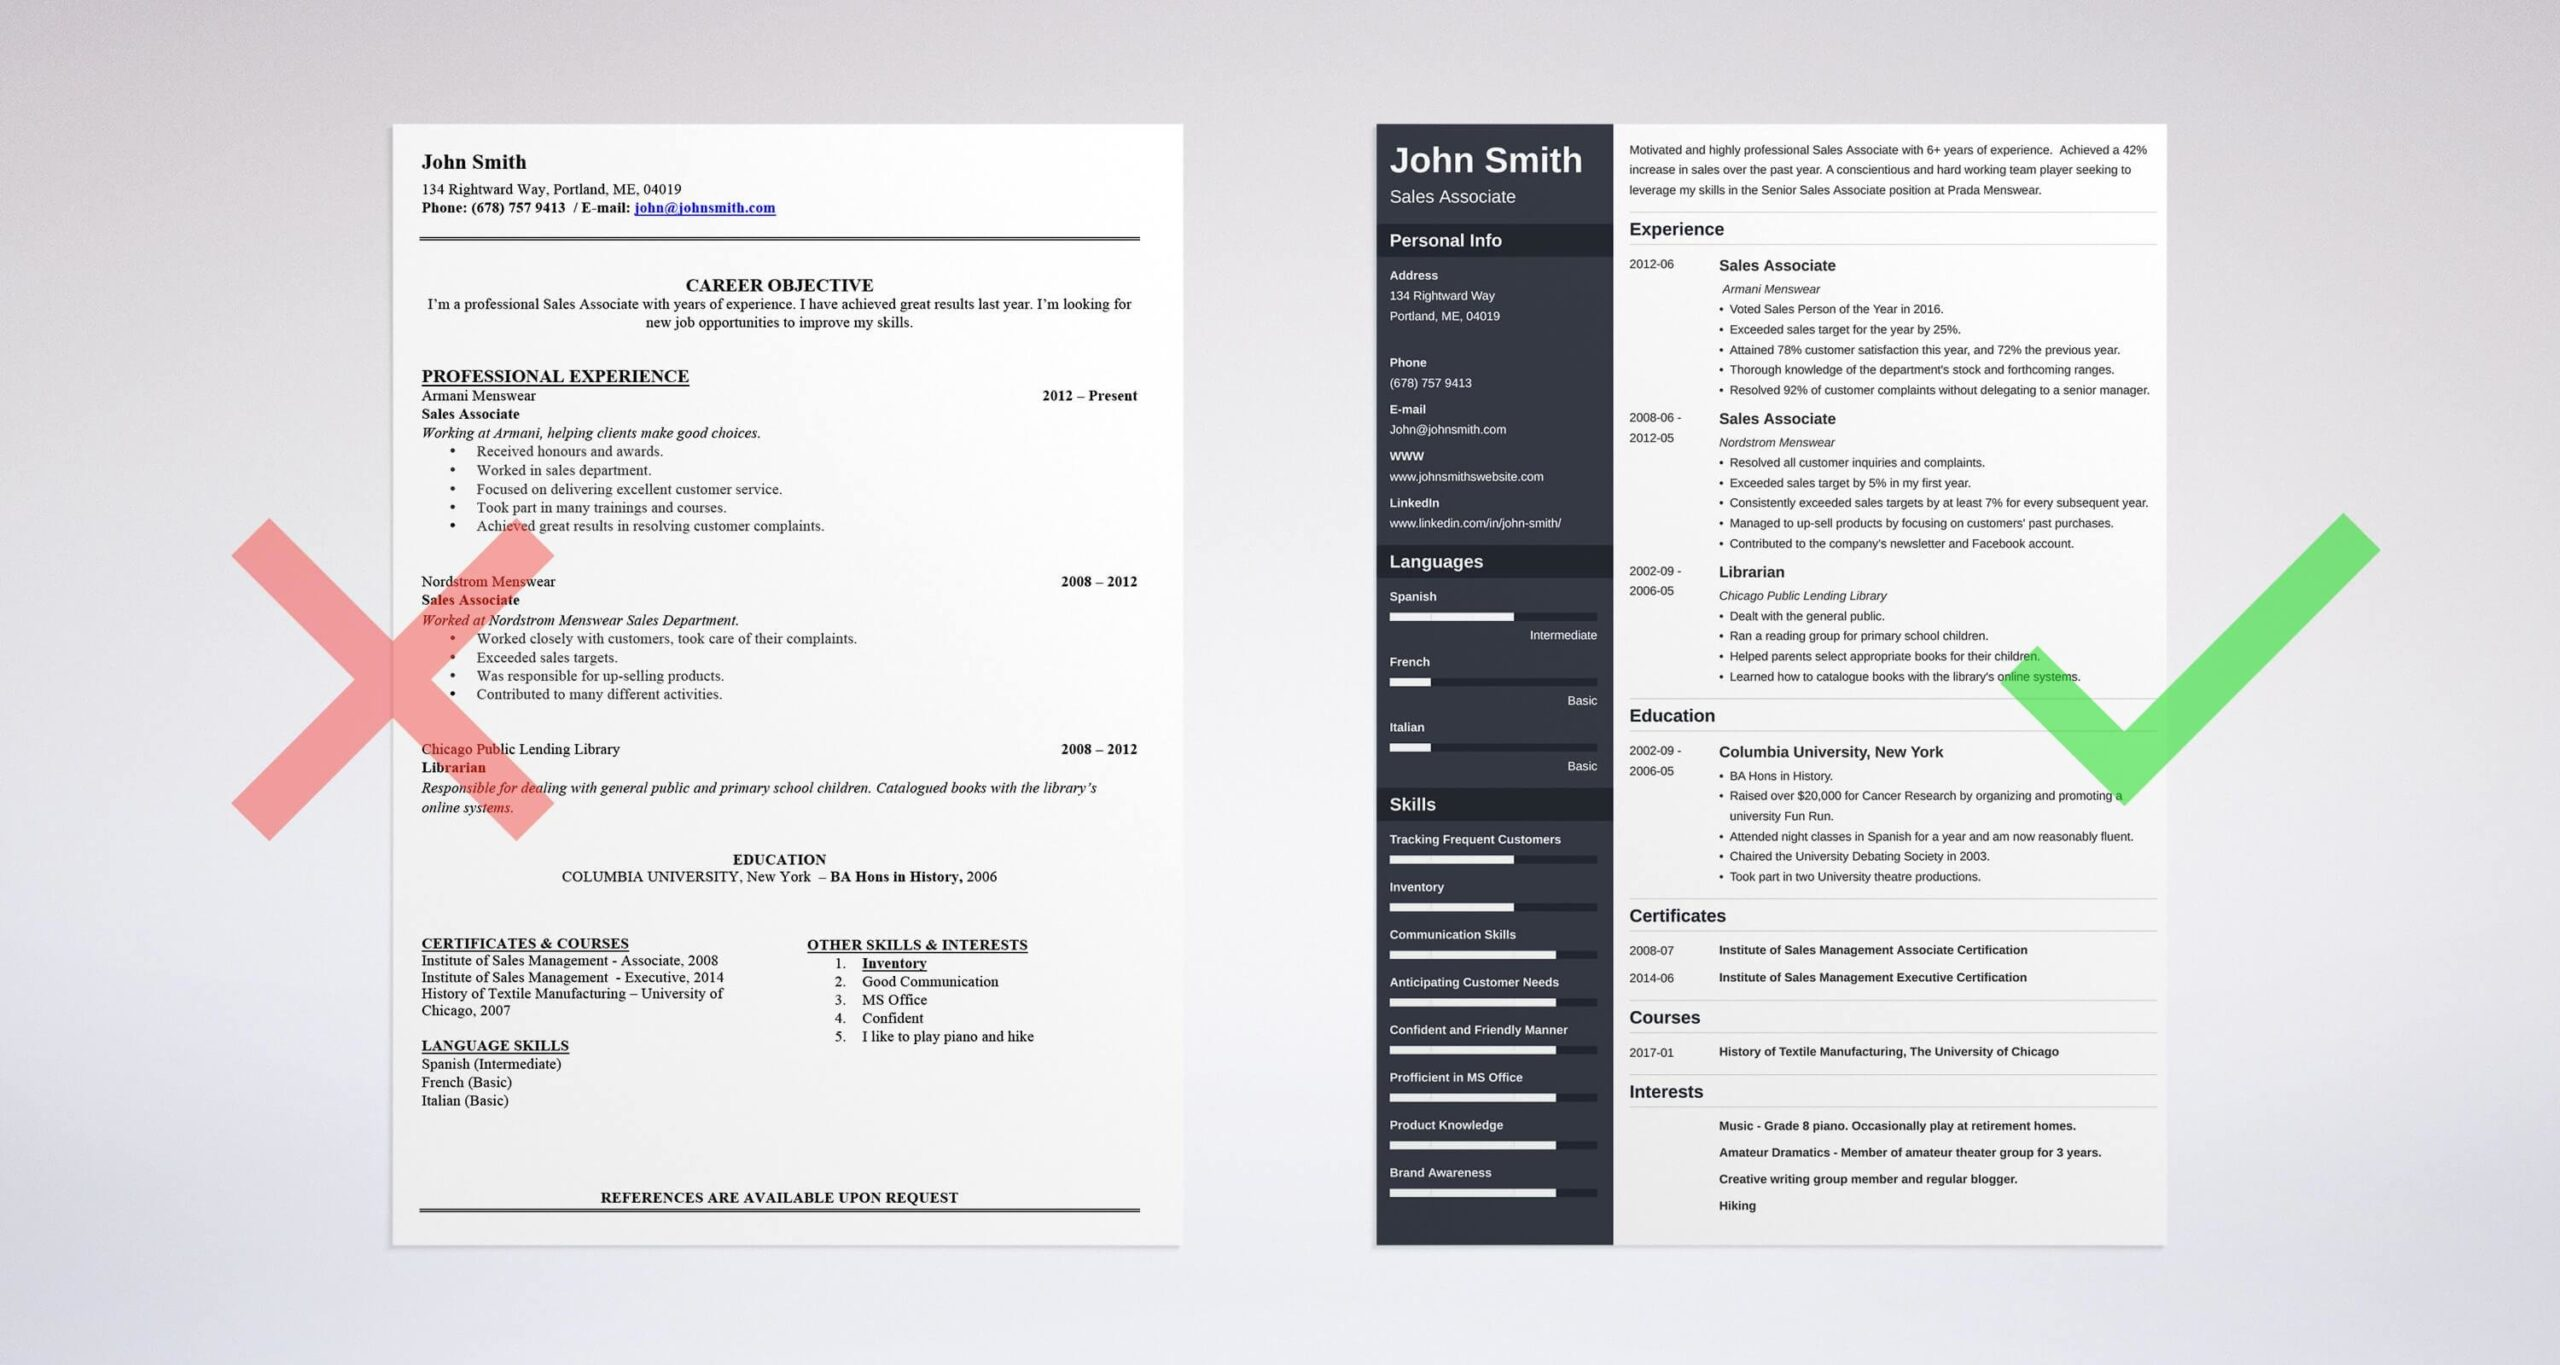 professional resume summary examples statements statement for students on template dark Resume Resume Summary Statement For Students